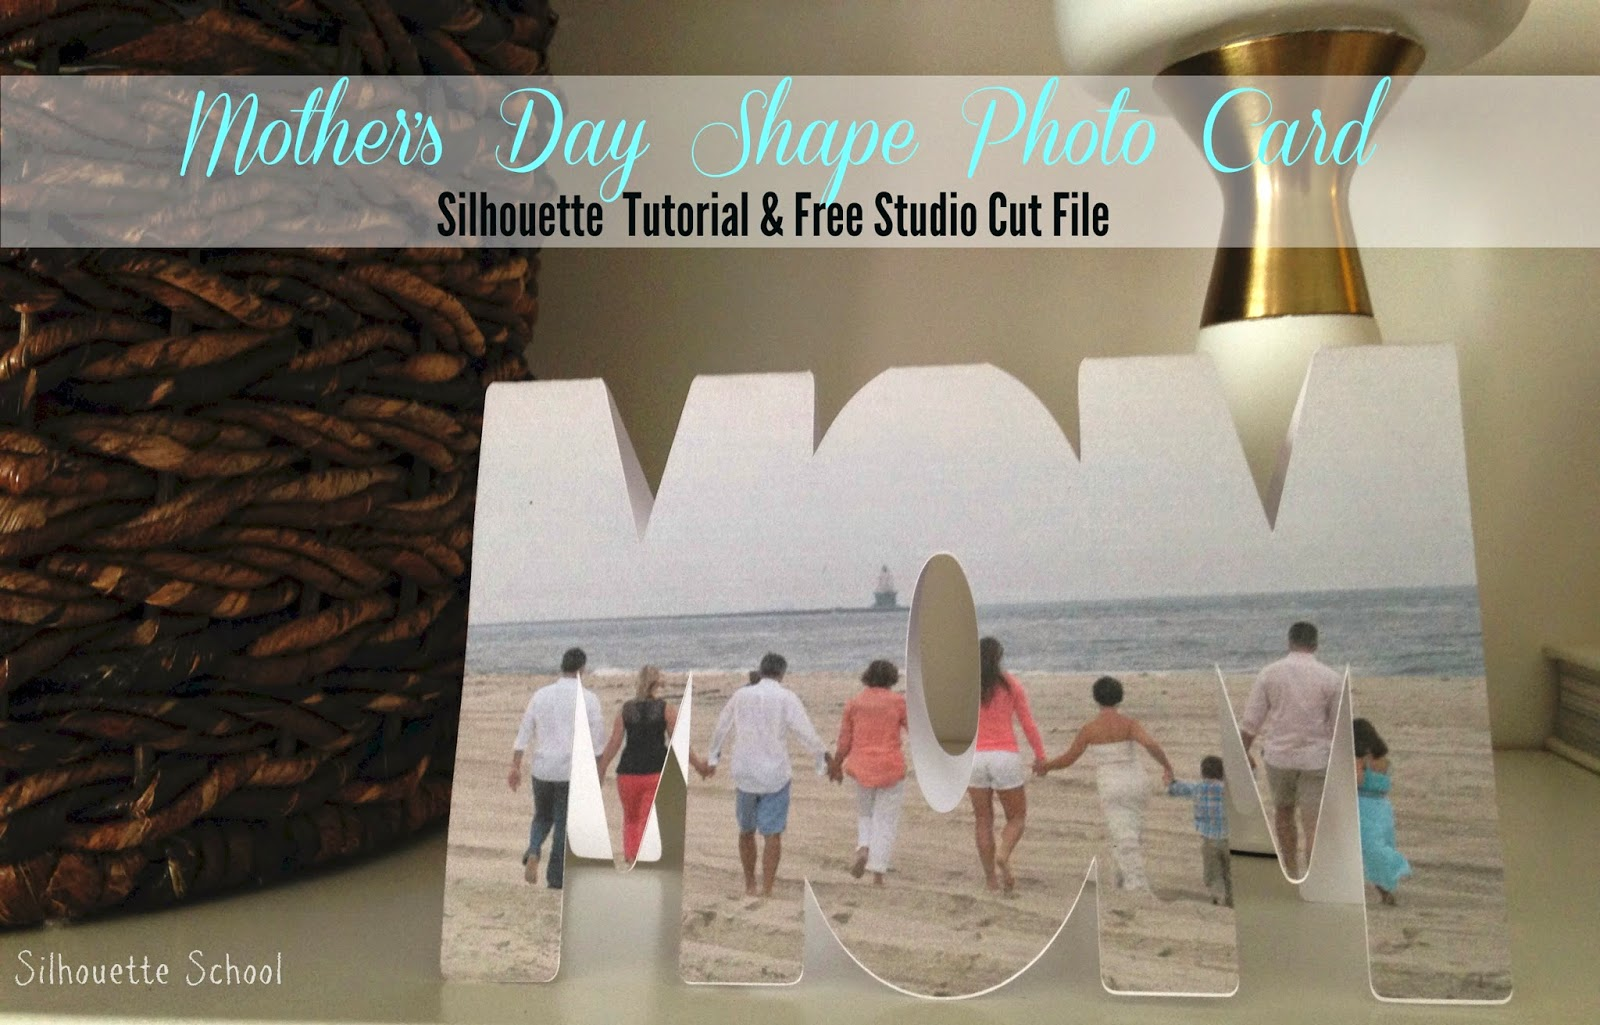 Silhouette Studio, free cut file, Mom card, Mother's Day, Silhouette tutorial